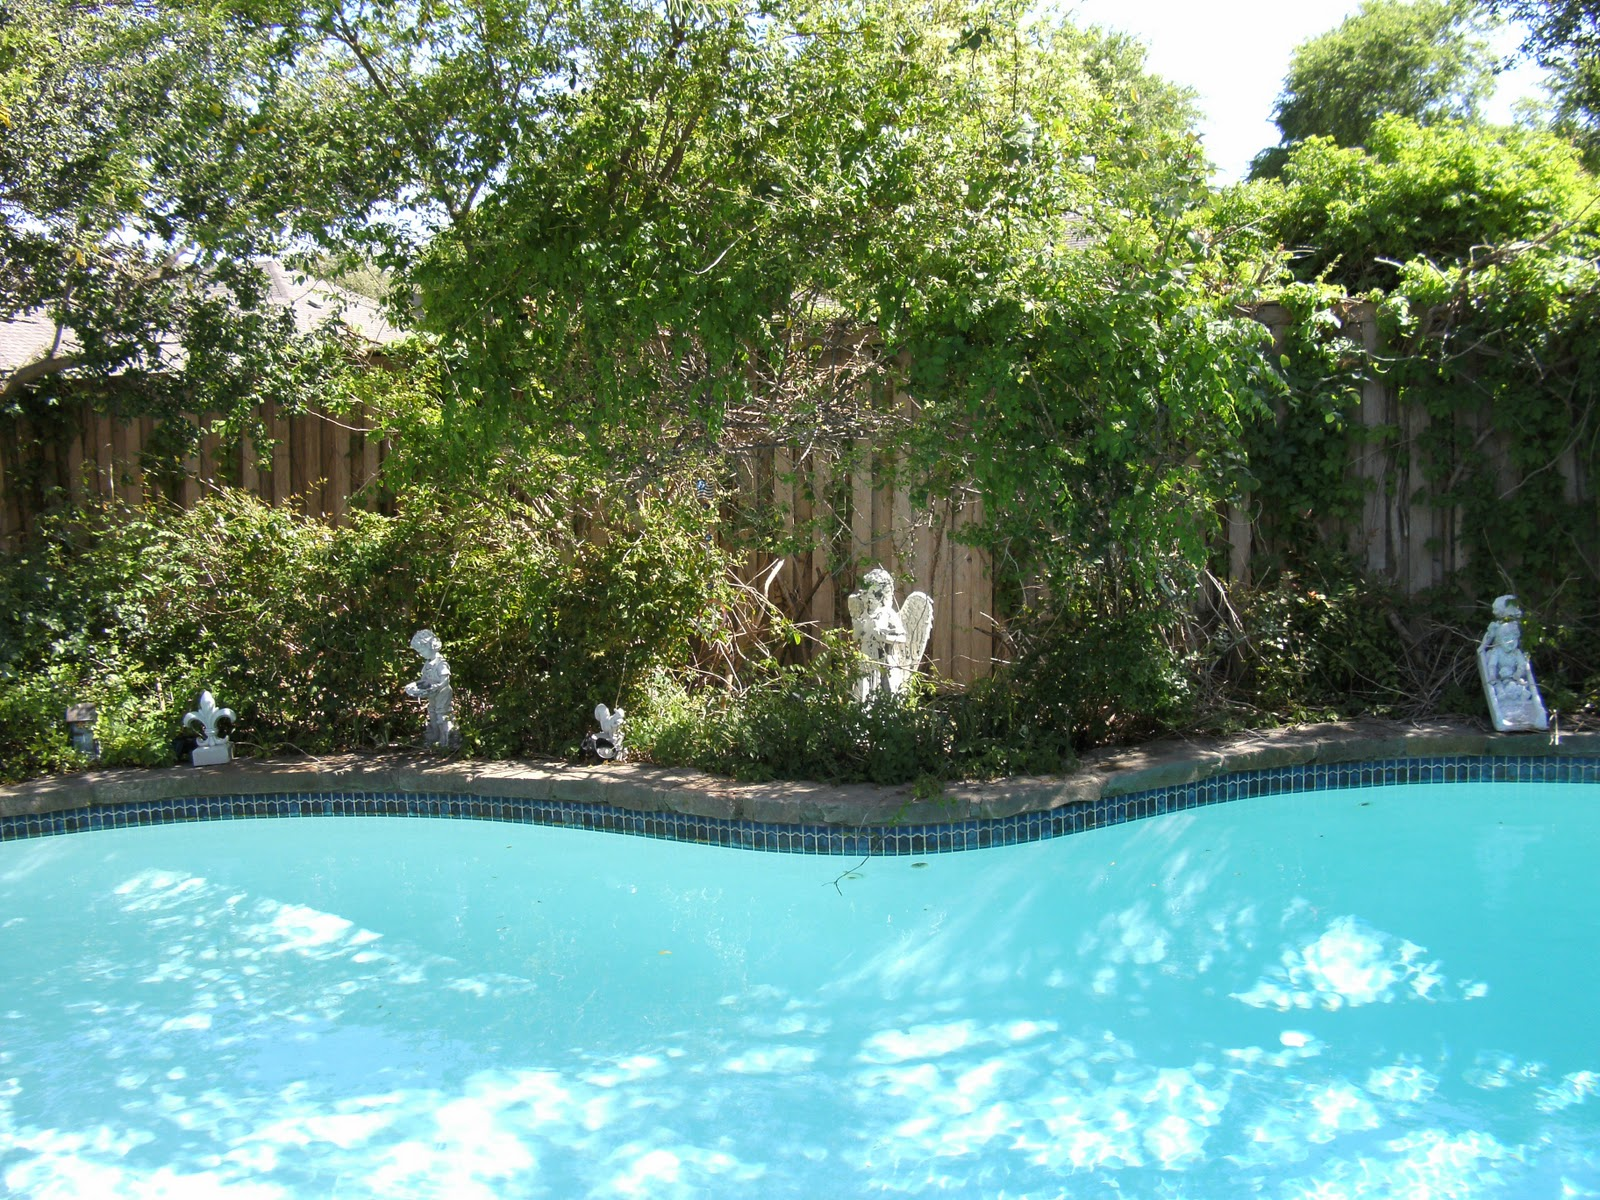 Ducks in my pool and other stories ducks in my pool - Duck repellent for swimming pools ...